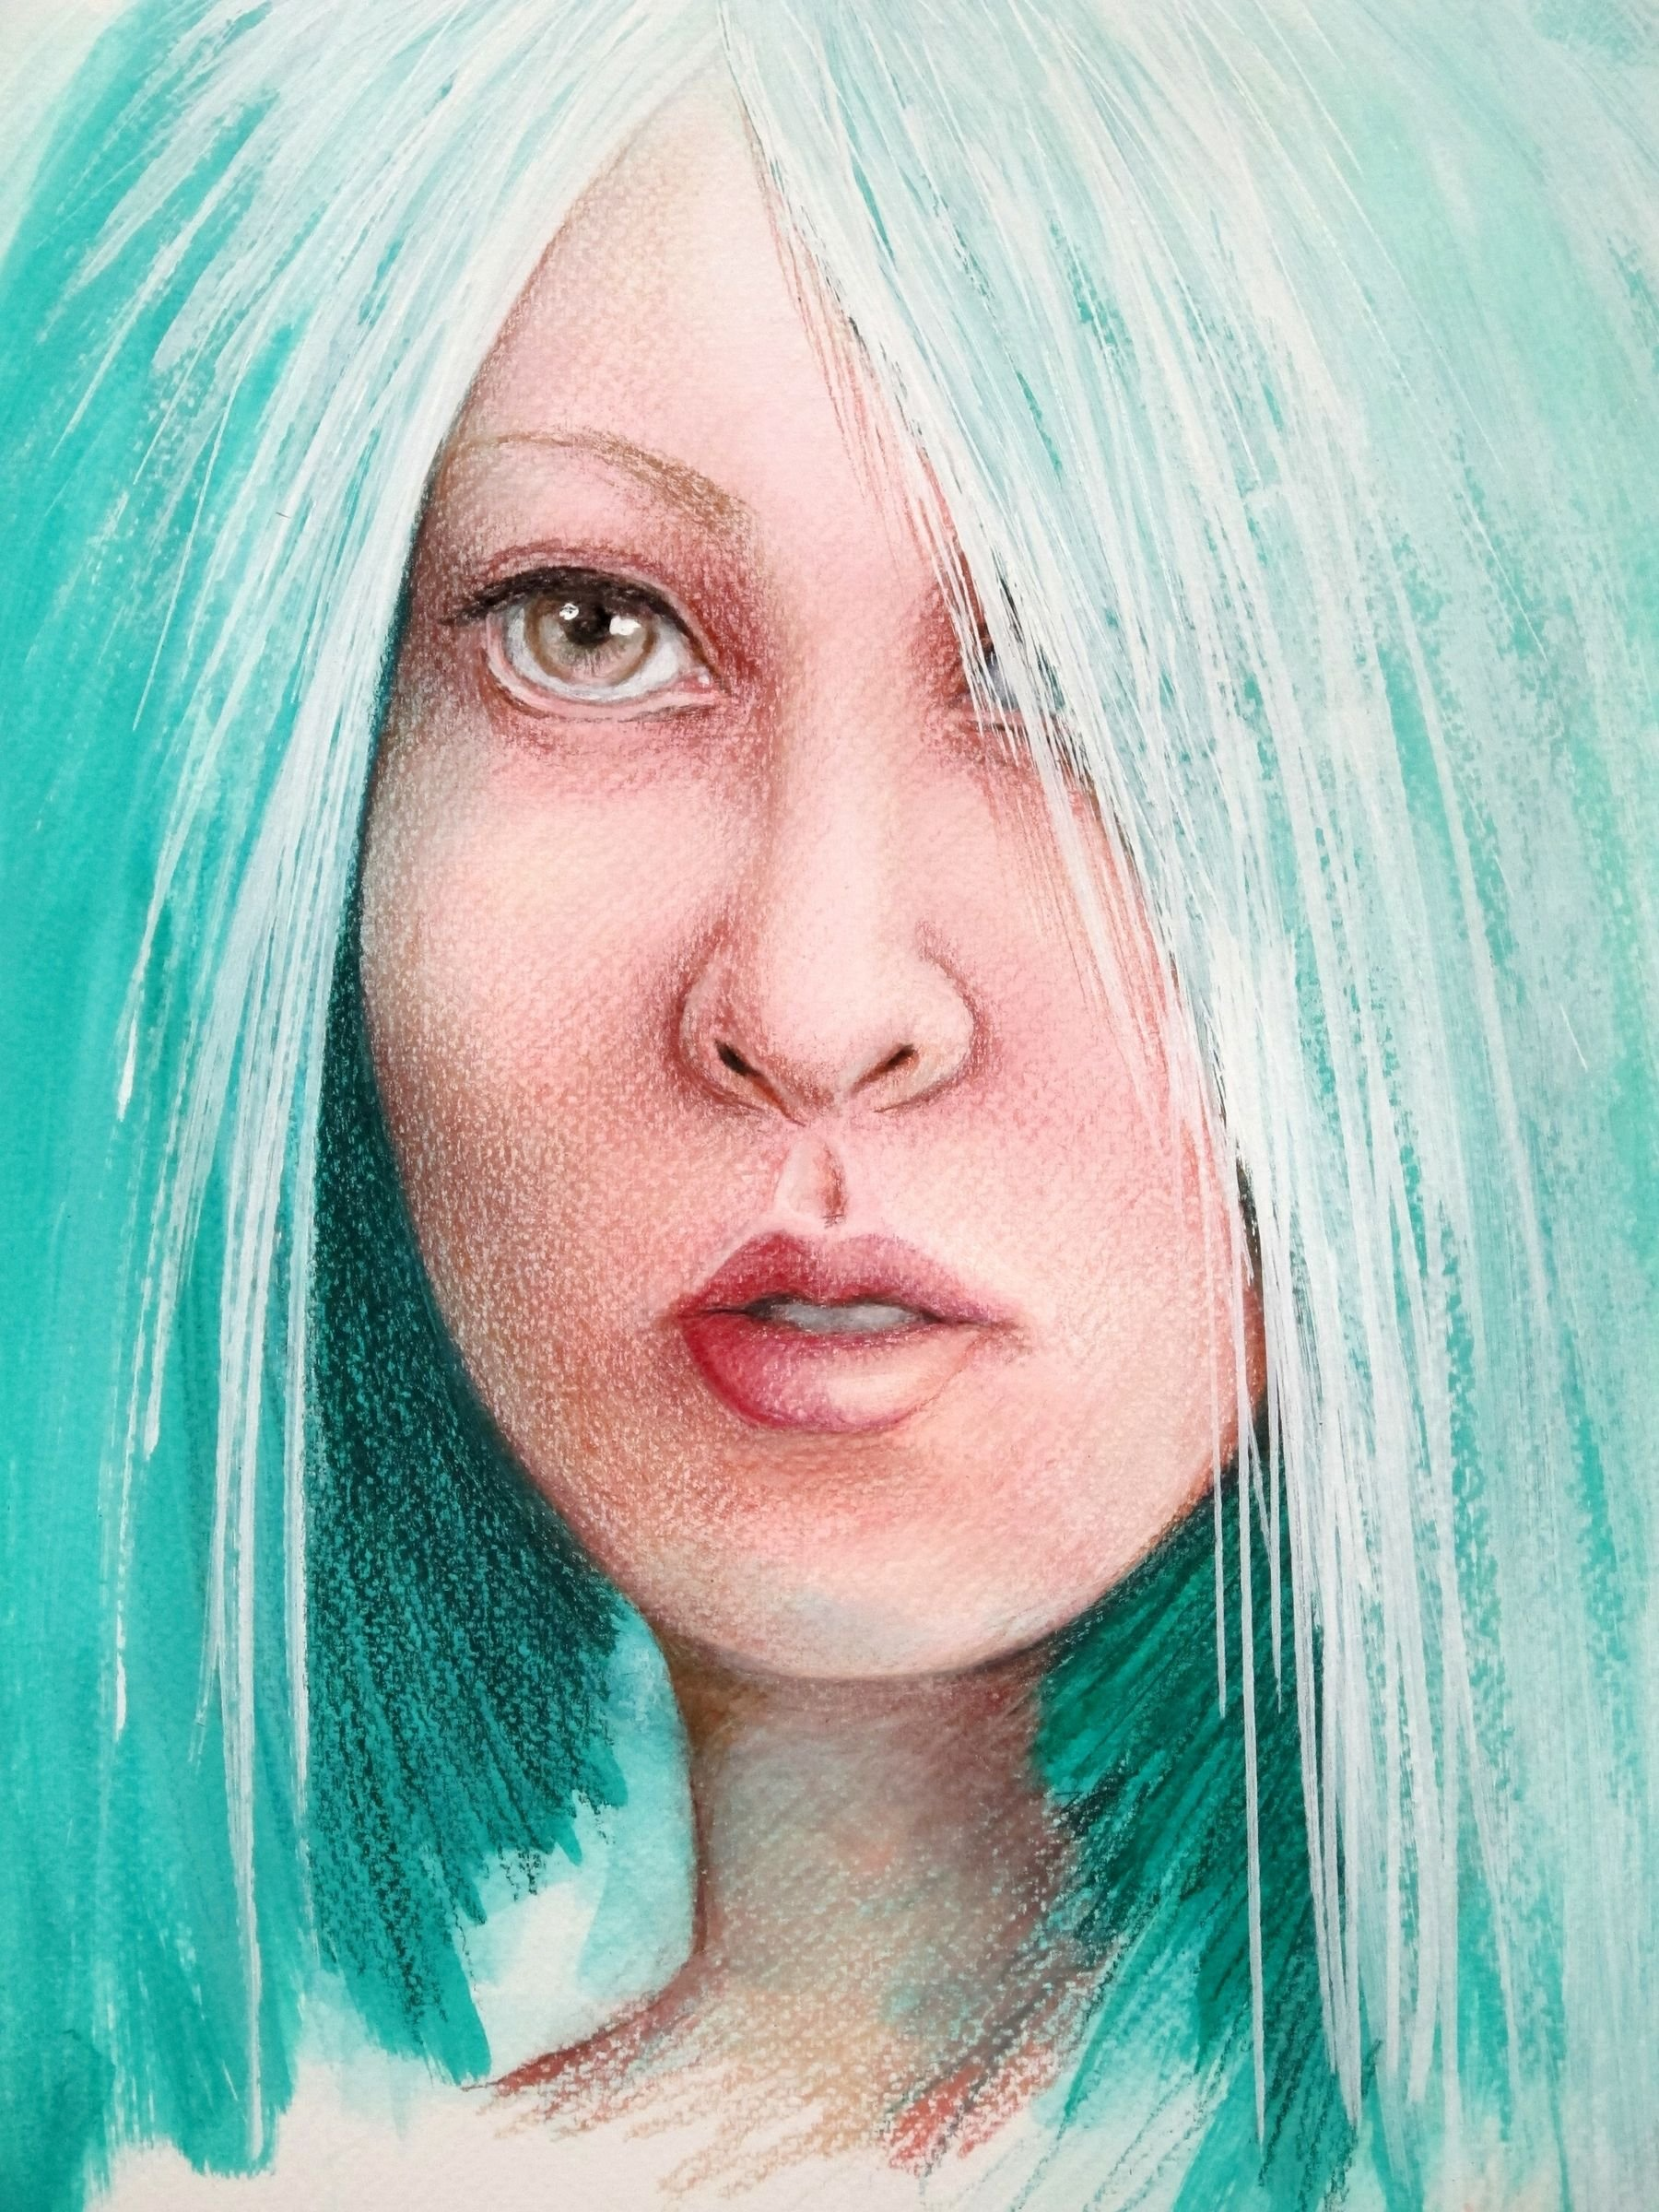 The other girl with turquoise hair